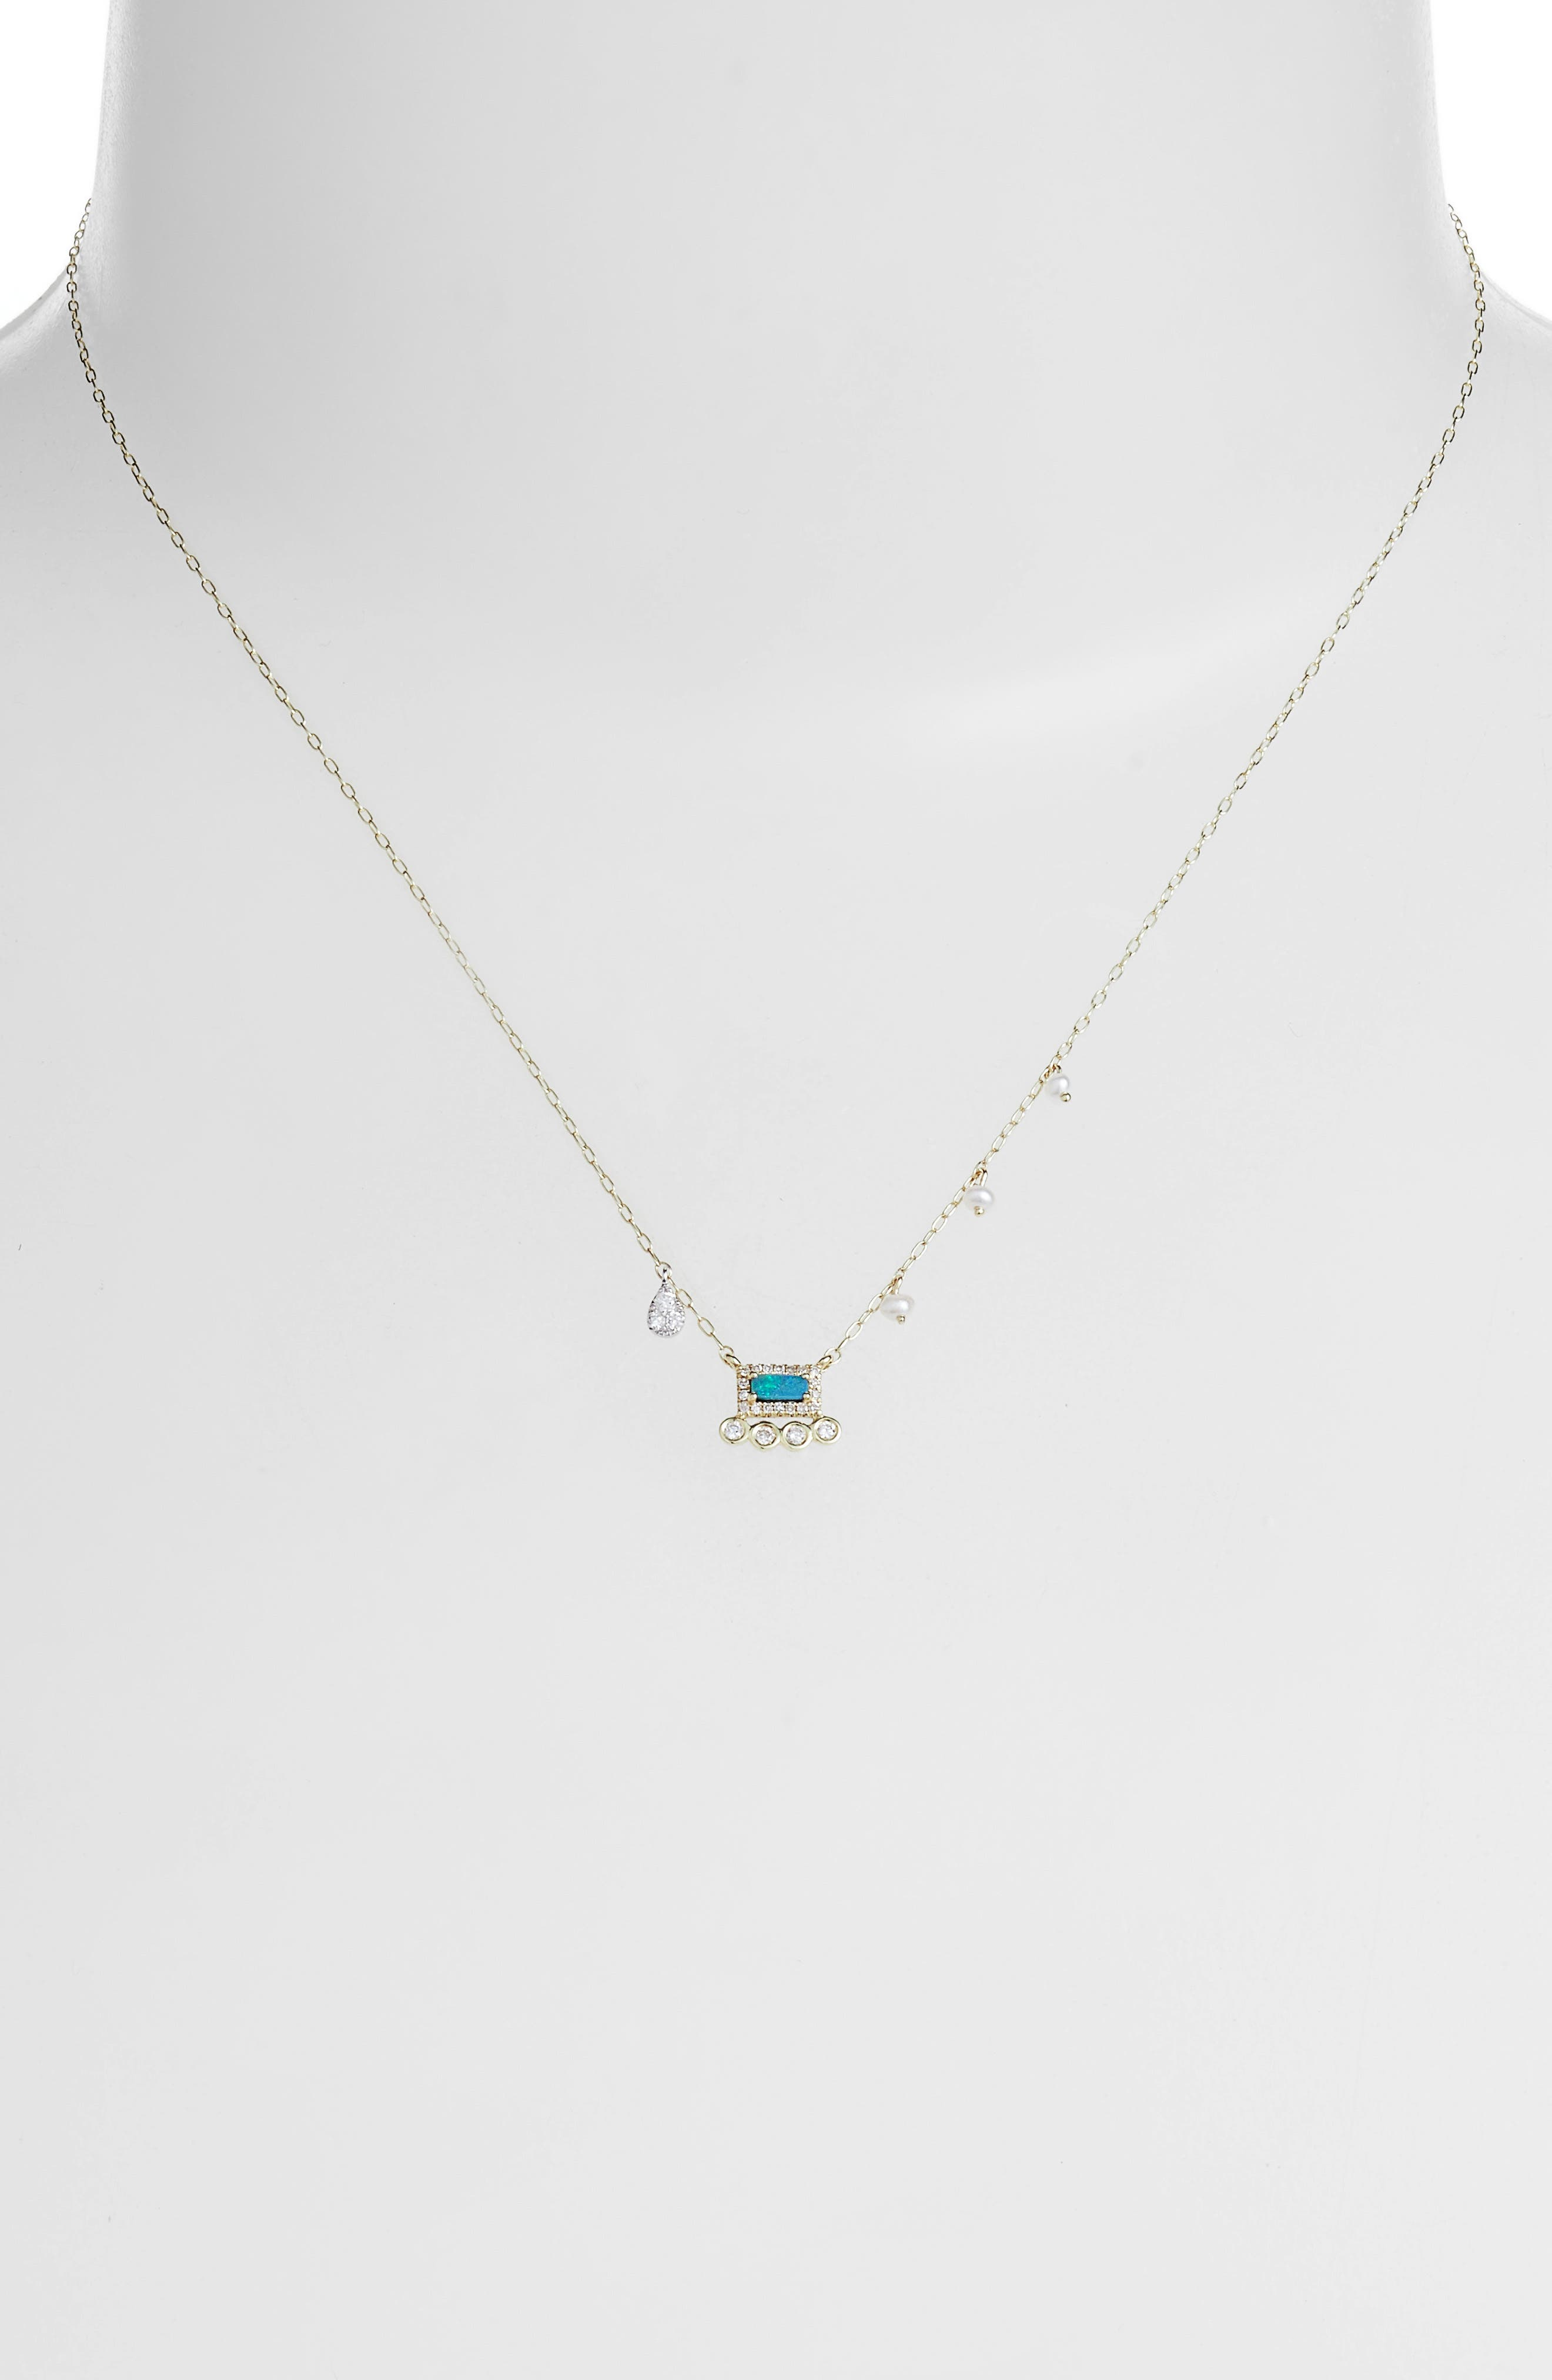 Meira T Opal & Diamond Charm Necklace